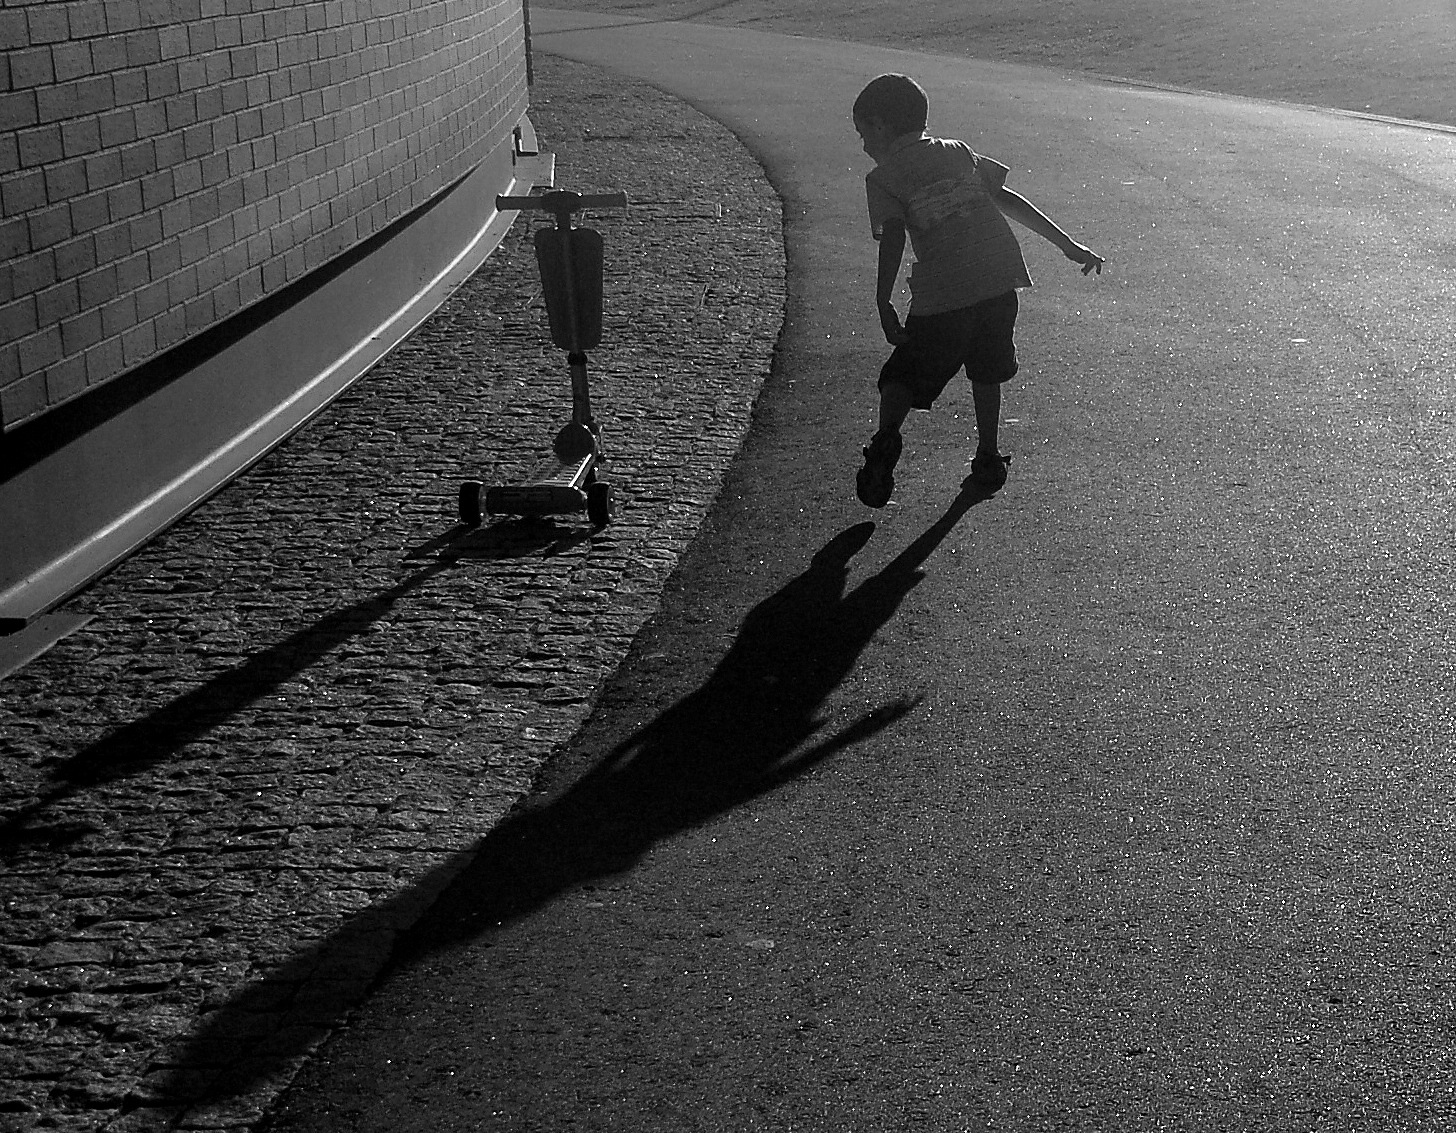 Untitled by Rui Moura